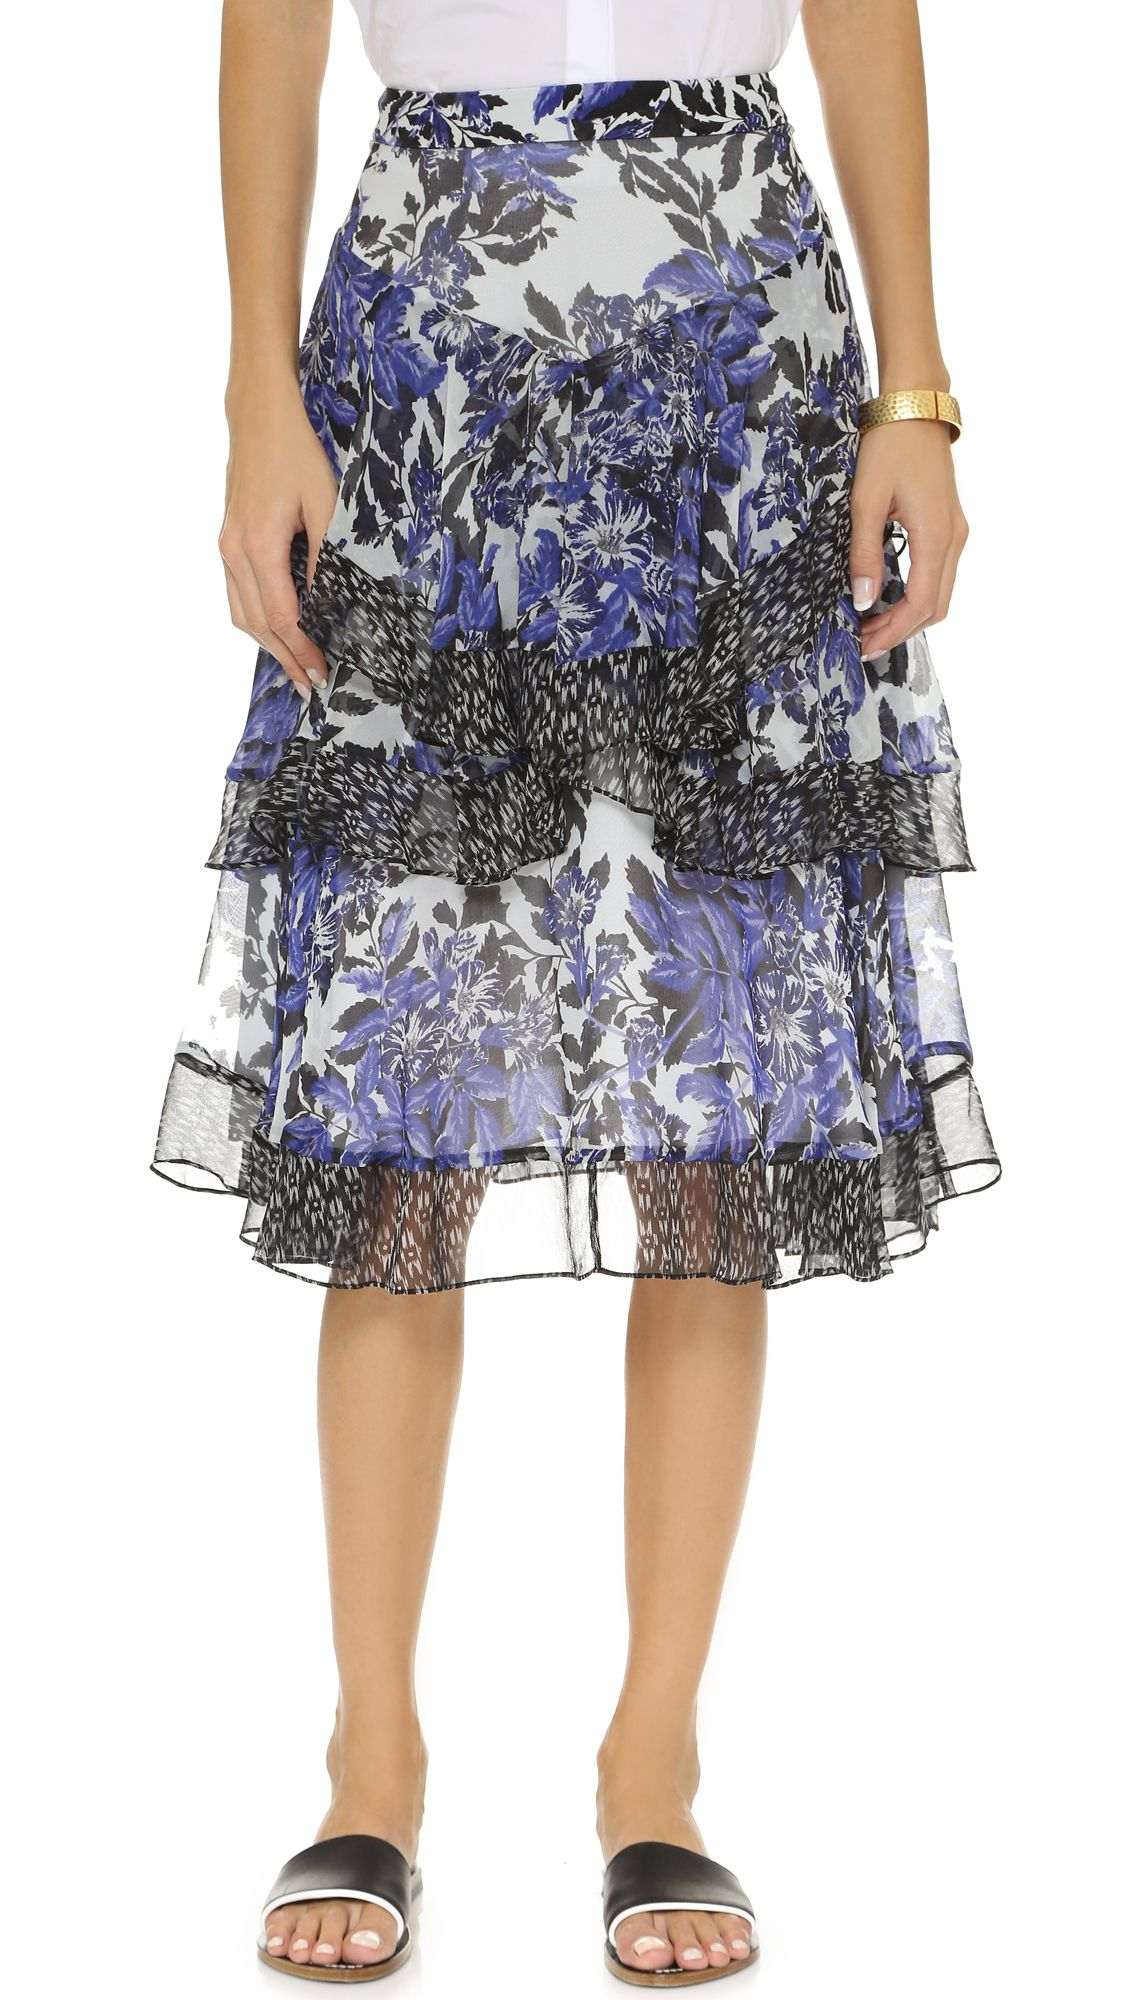 Rebecca Taylor Flame Combo Skirt http://www.modandretro.com/rebecca-taylor-flame-combo-skirt/